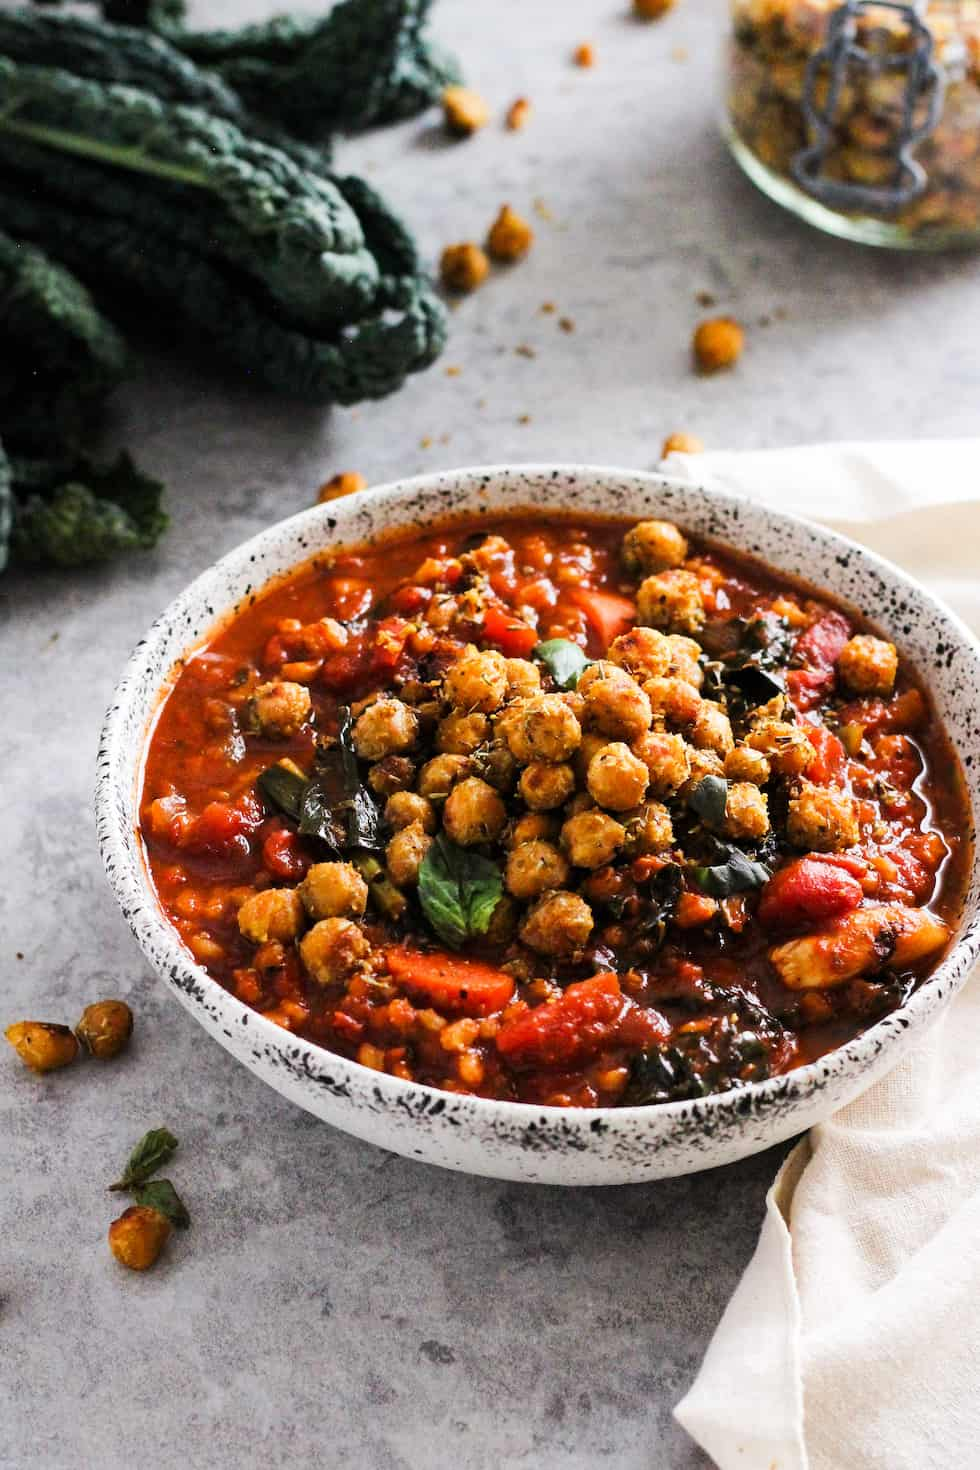 Tomato barley soup with roasted chickpeas in stone bowl with kale and mason jar or chickpeas in the background.